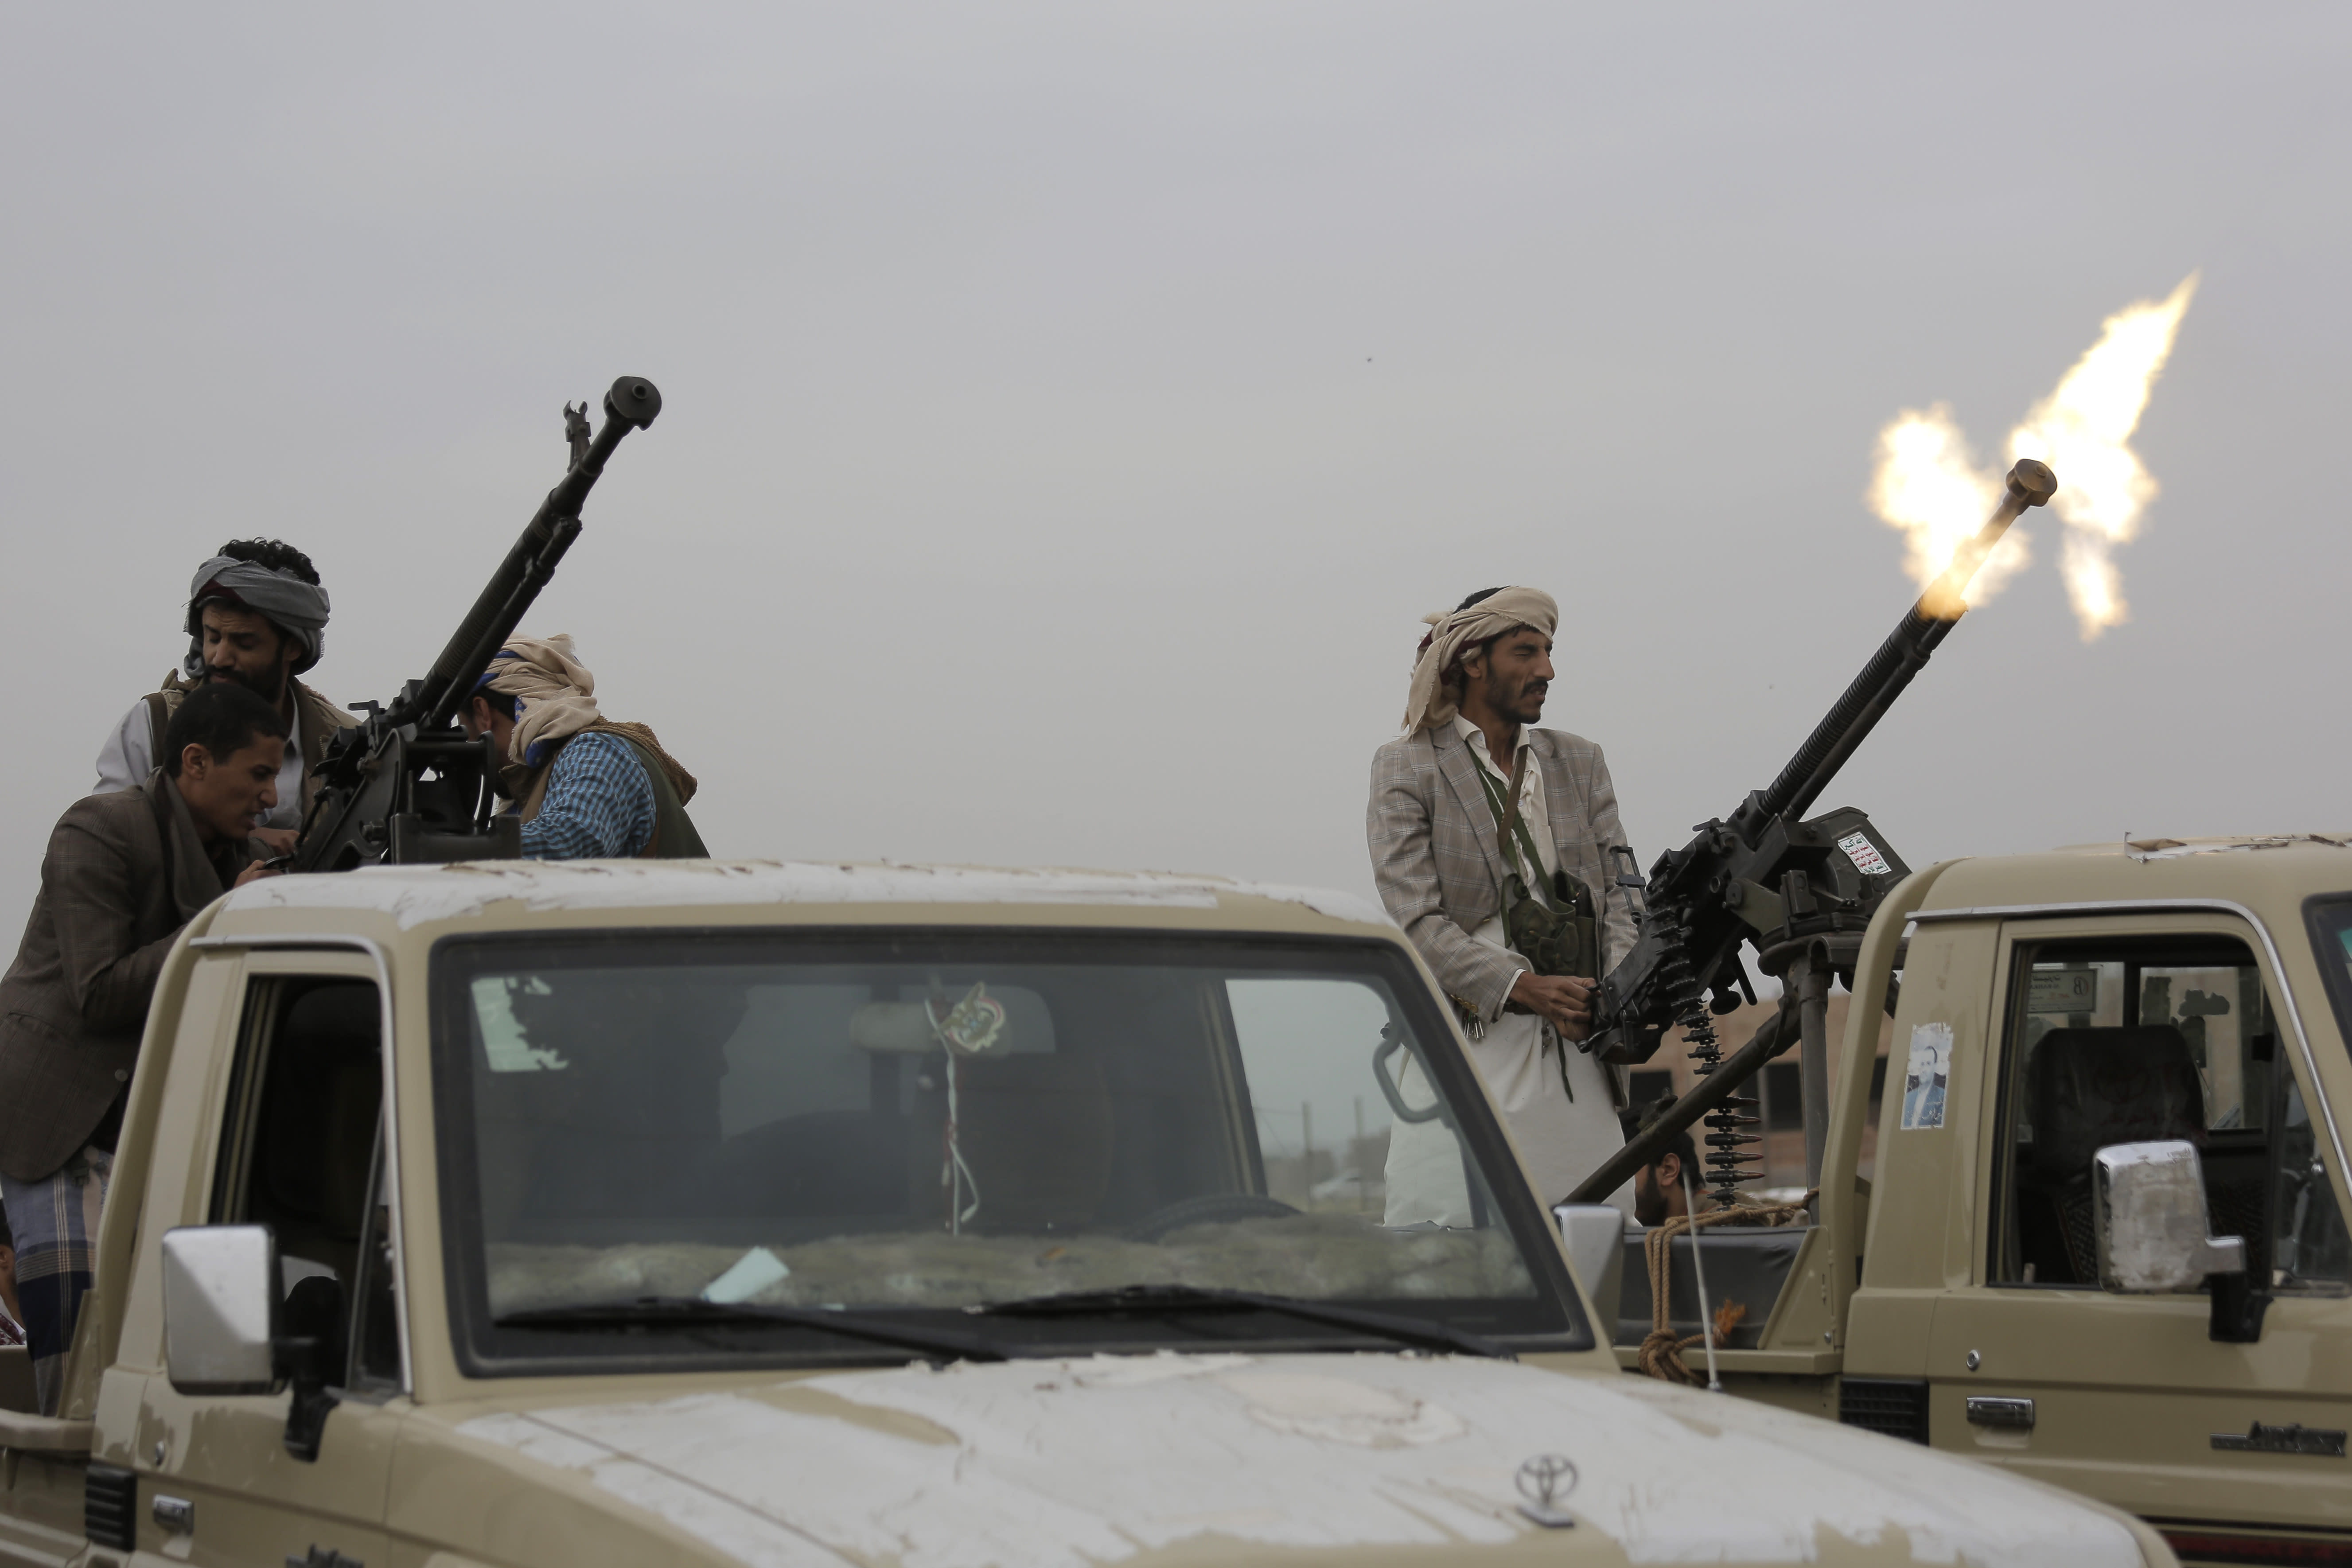 A Houthi rebel fighter fires in the air during a gathering aimed at mobilizing more fighters for the Houthi movement, in Sanaa, Yemen, Thursday, Aug. 1, 2019. The conflict in Yemen began with the 2014 takeover of Sanaa by the Houthis, who drove out the internationally recognized government. Months later, in March 2015, a Saudi-led coalition launched its air campaign to prevent the rebels from overrunning the country's south. (AP Photo/Hani Mohammed)